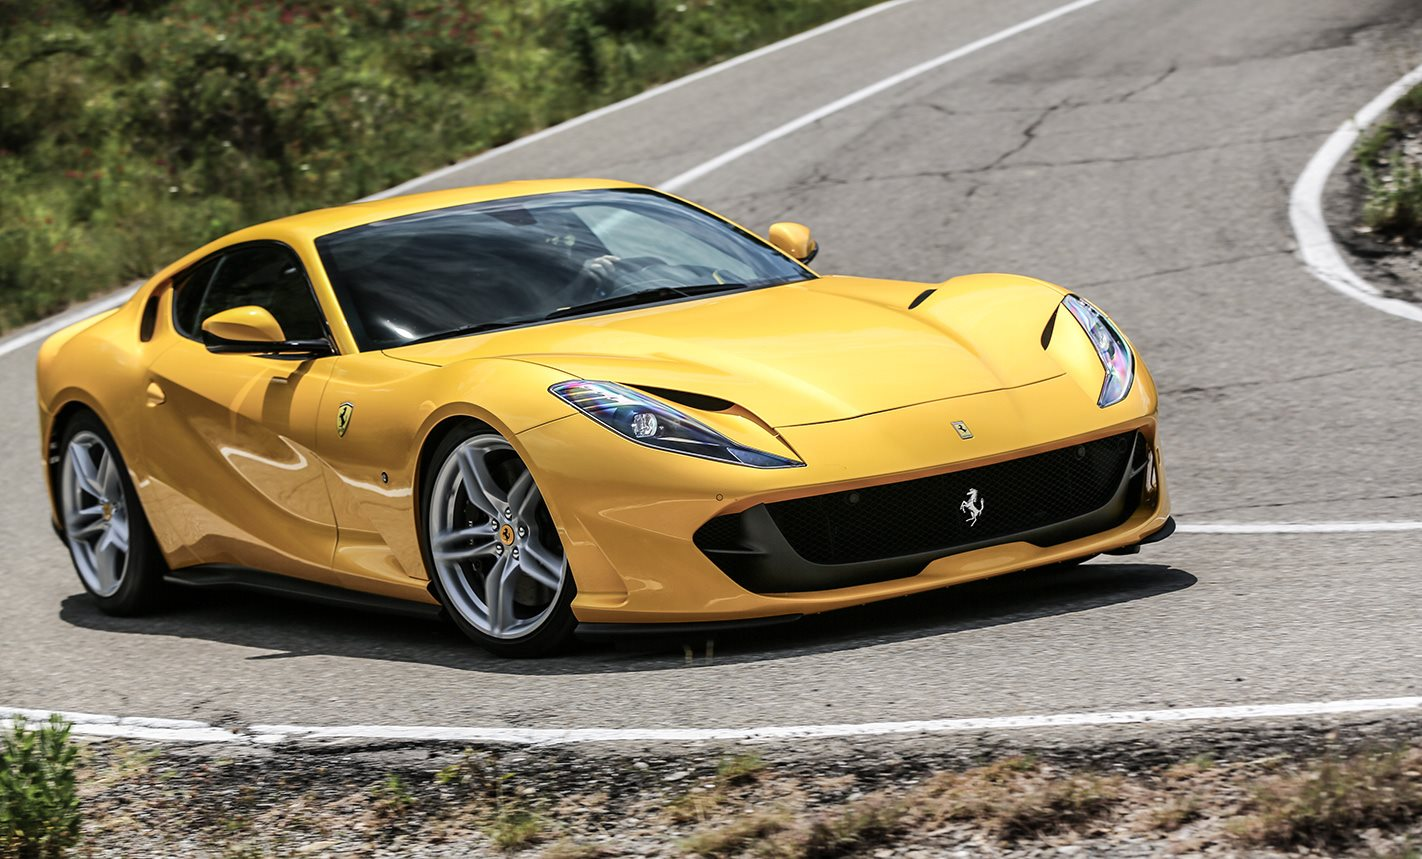 2018 Ferrari 812 Superfast turning.jpg